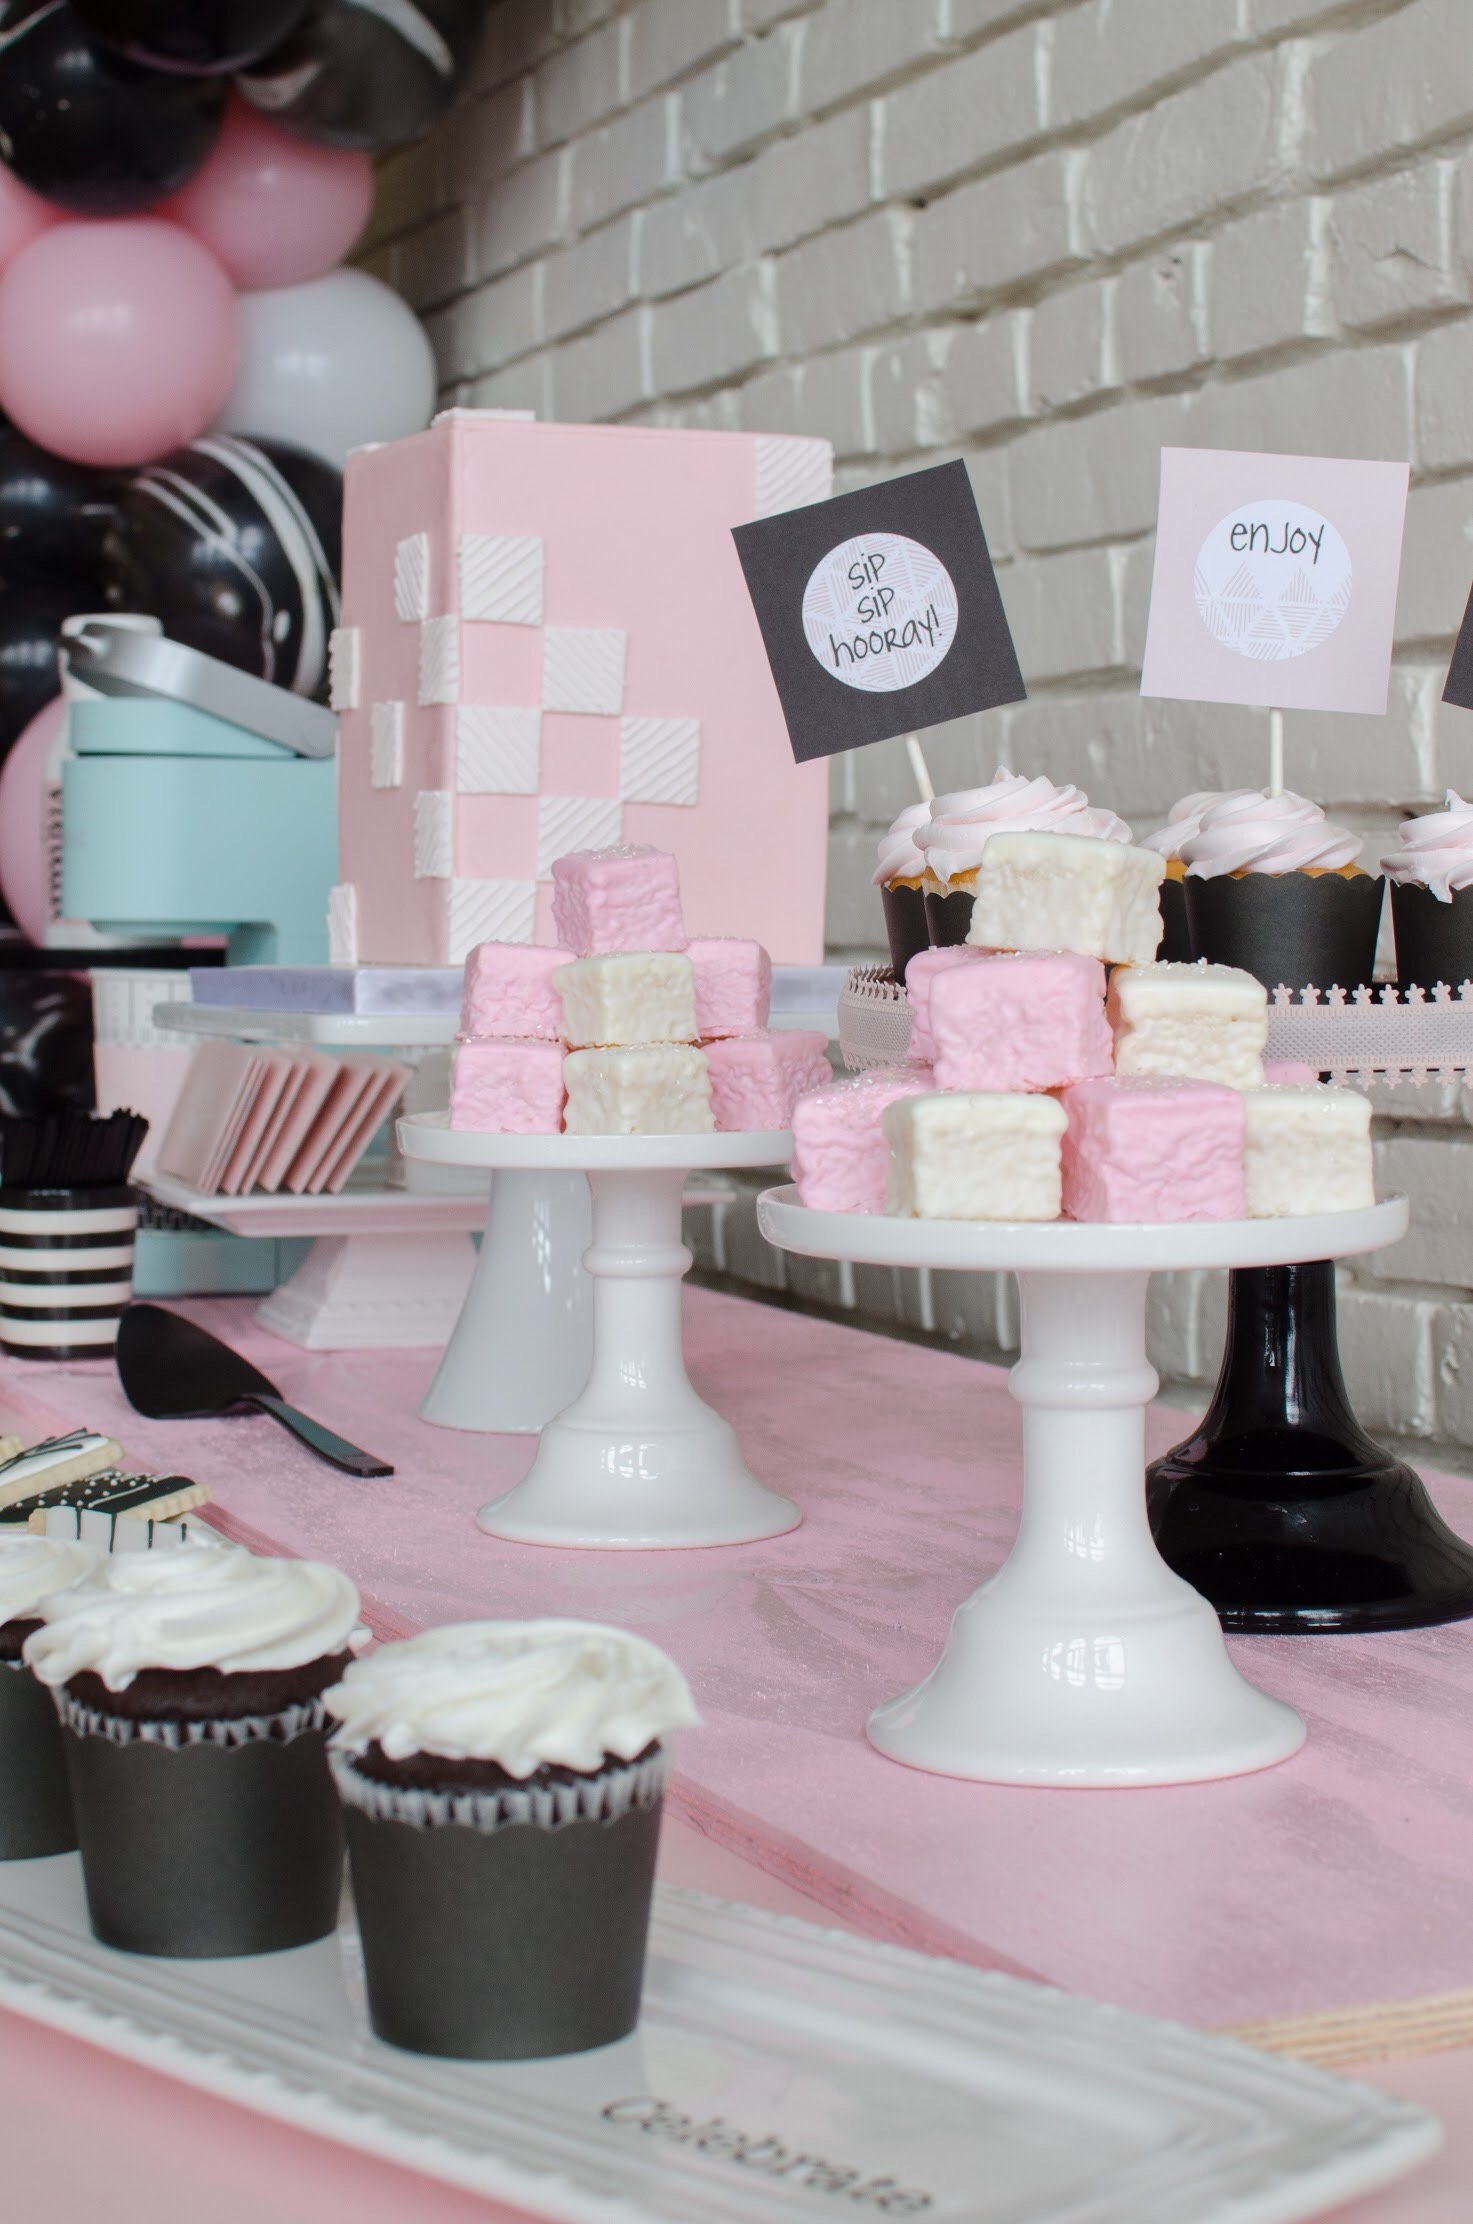 Cupcakes and petit fours and cakes! Adorbly pink and perfect for any celebration!